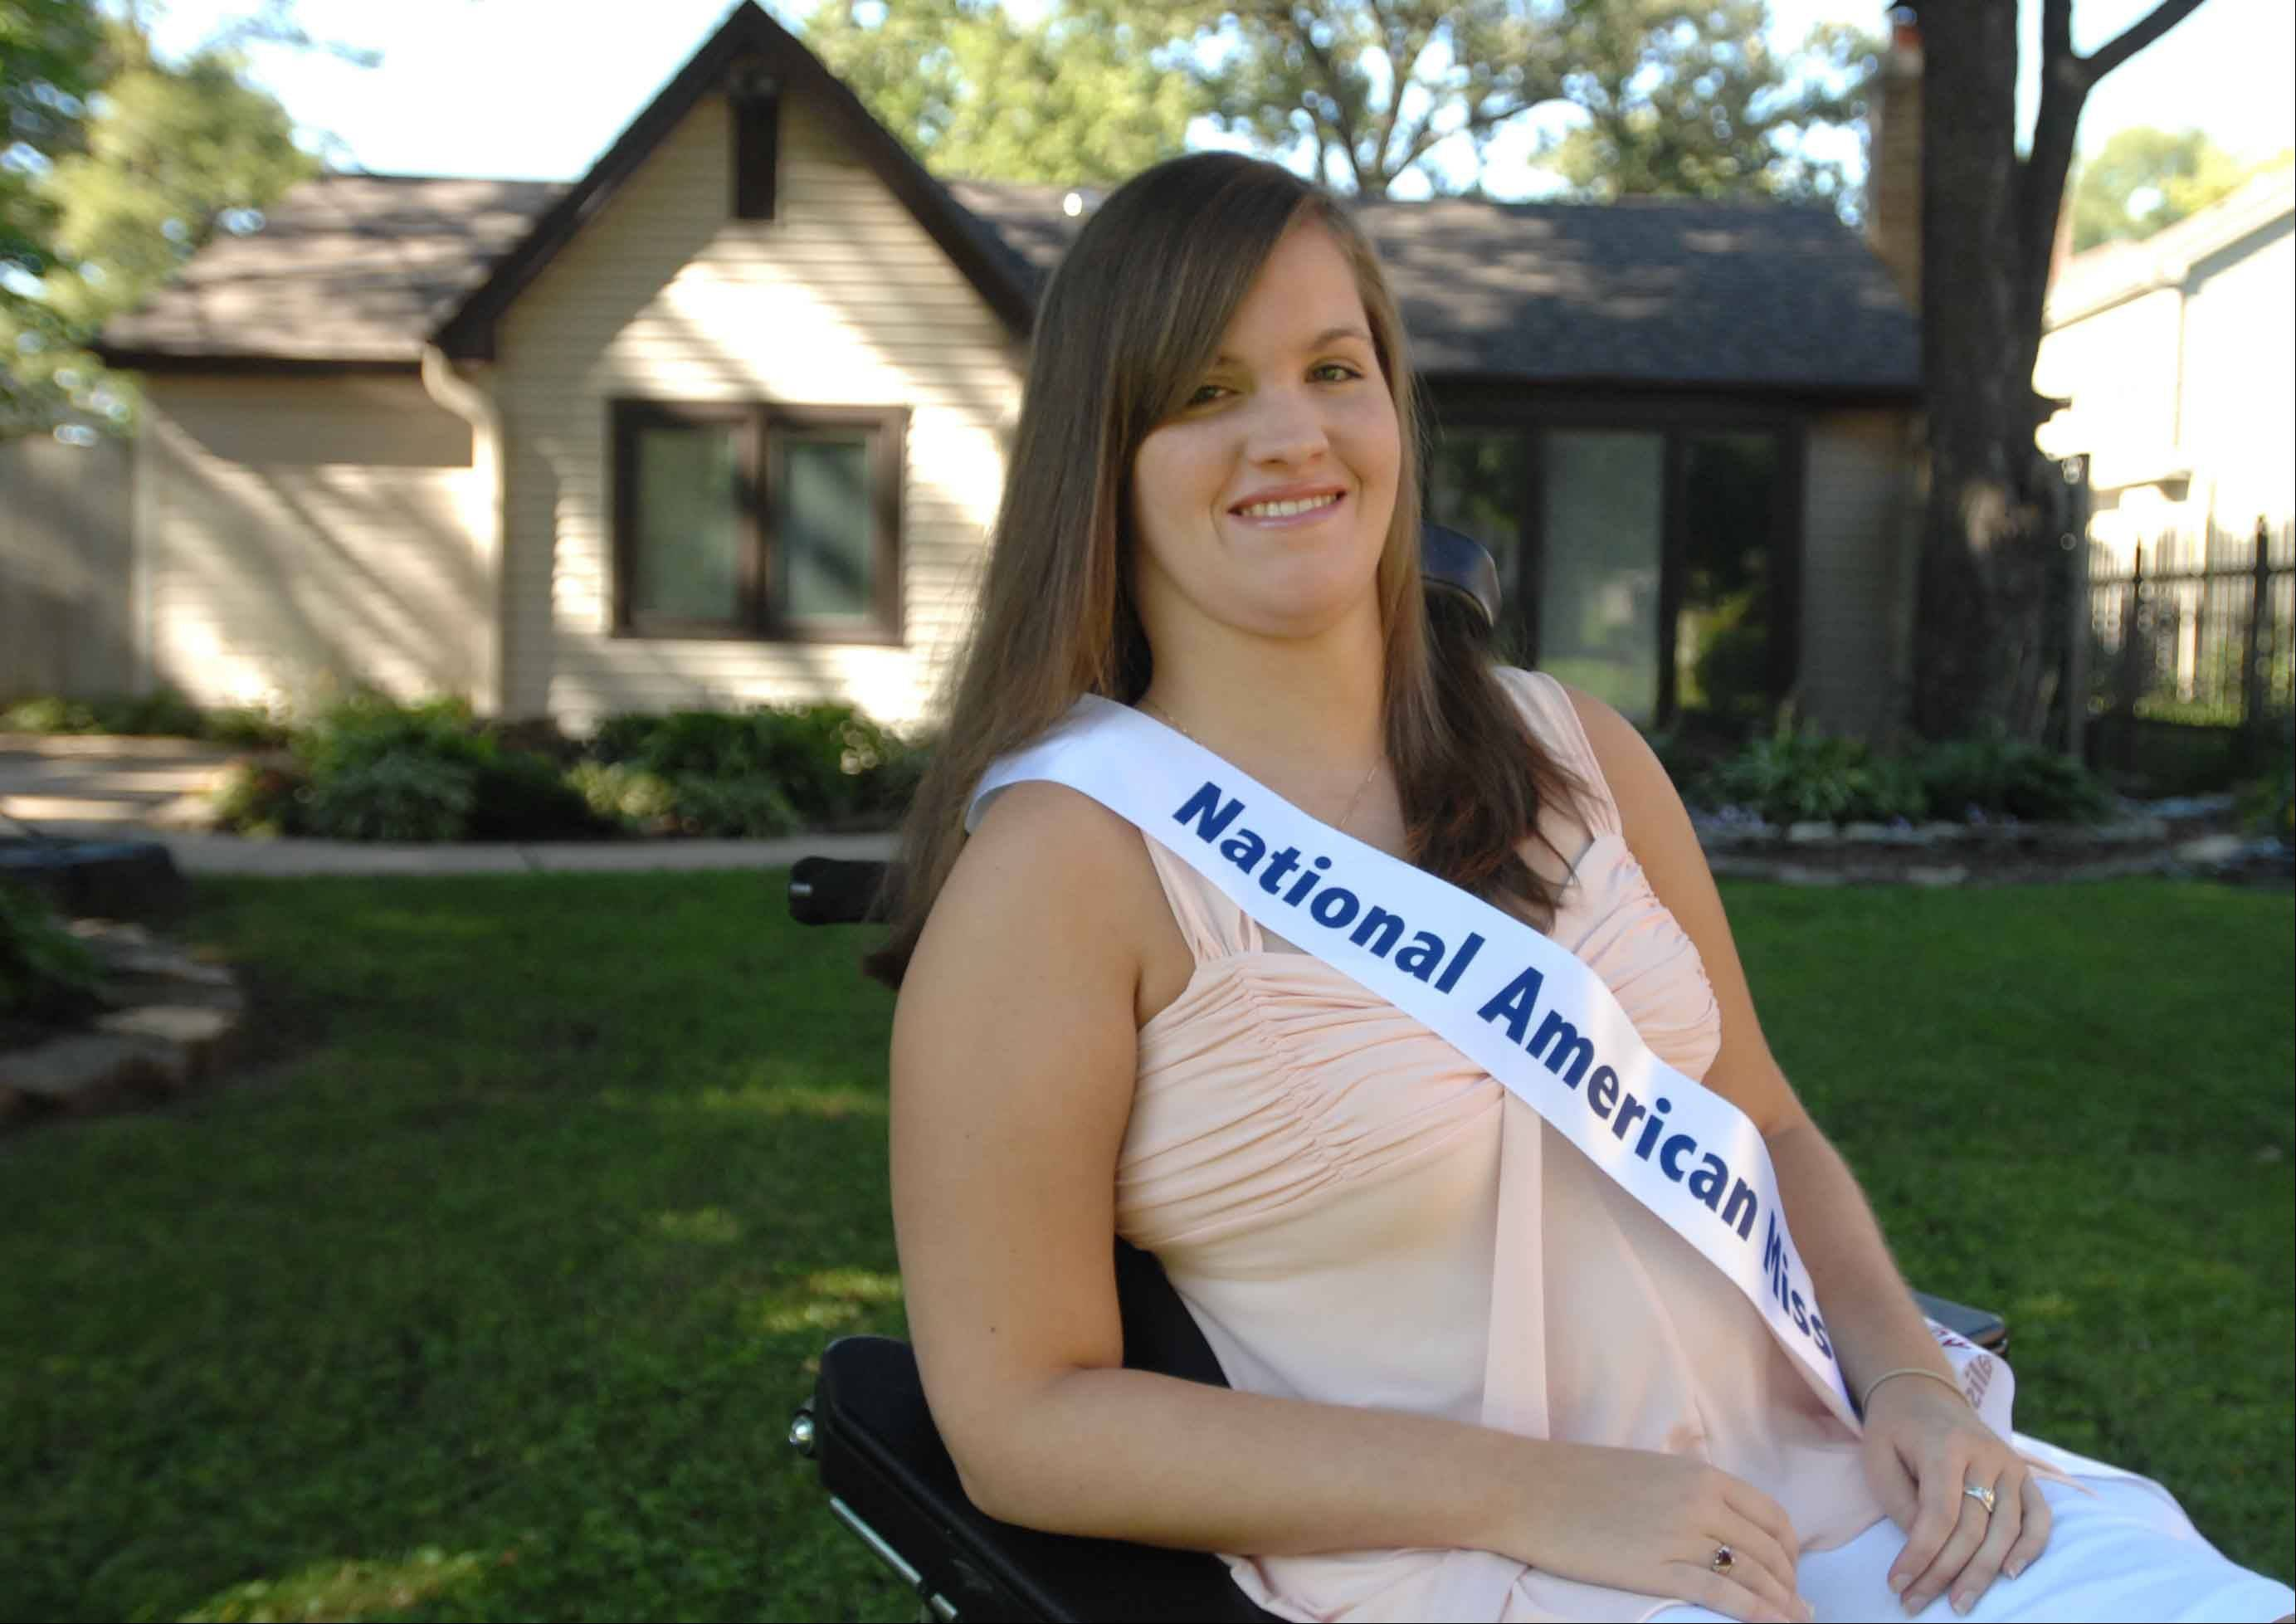 Though confined to a wheelchair, Devin Davis, 19, of Elmhurst, will compete in the National American Miss Illinois state pageant this weekend in St. Charles.